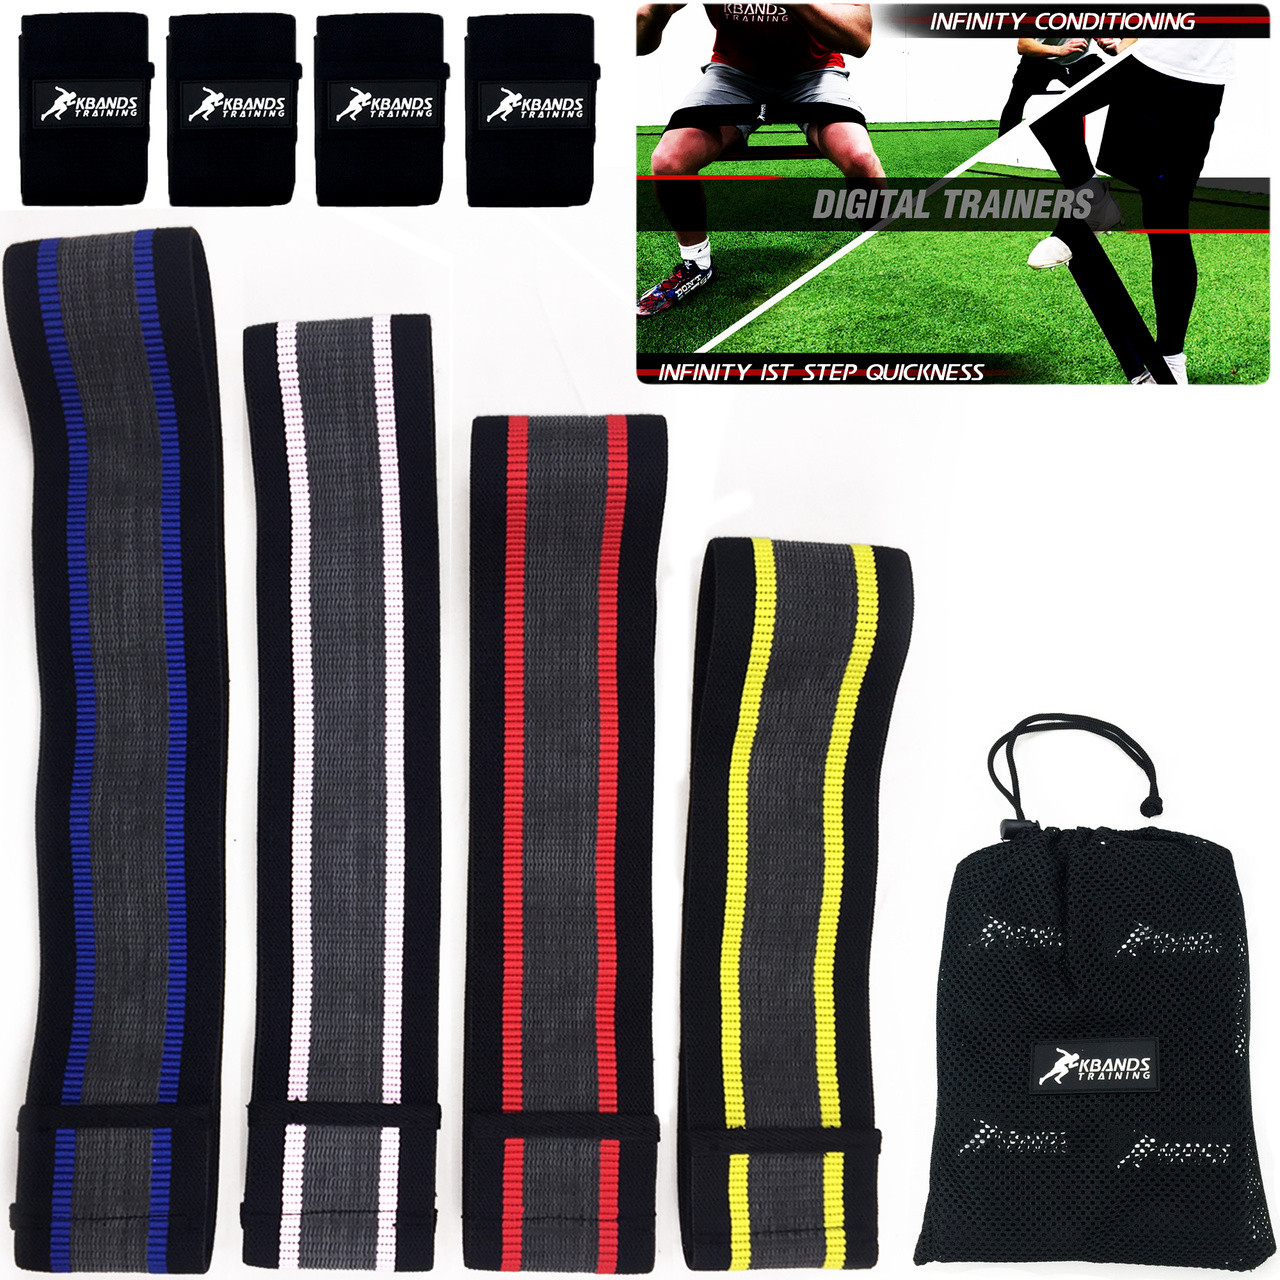 Infinity Flex Fabric Loop Hip Bands (1st Step Quickness & Conditioning)